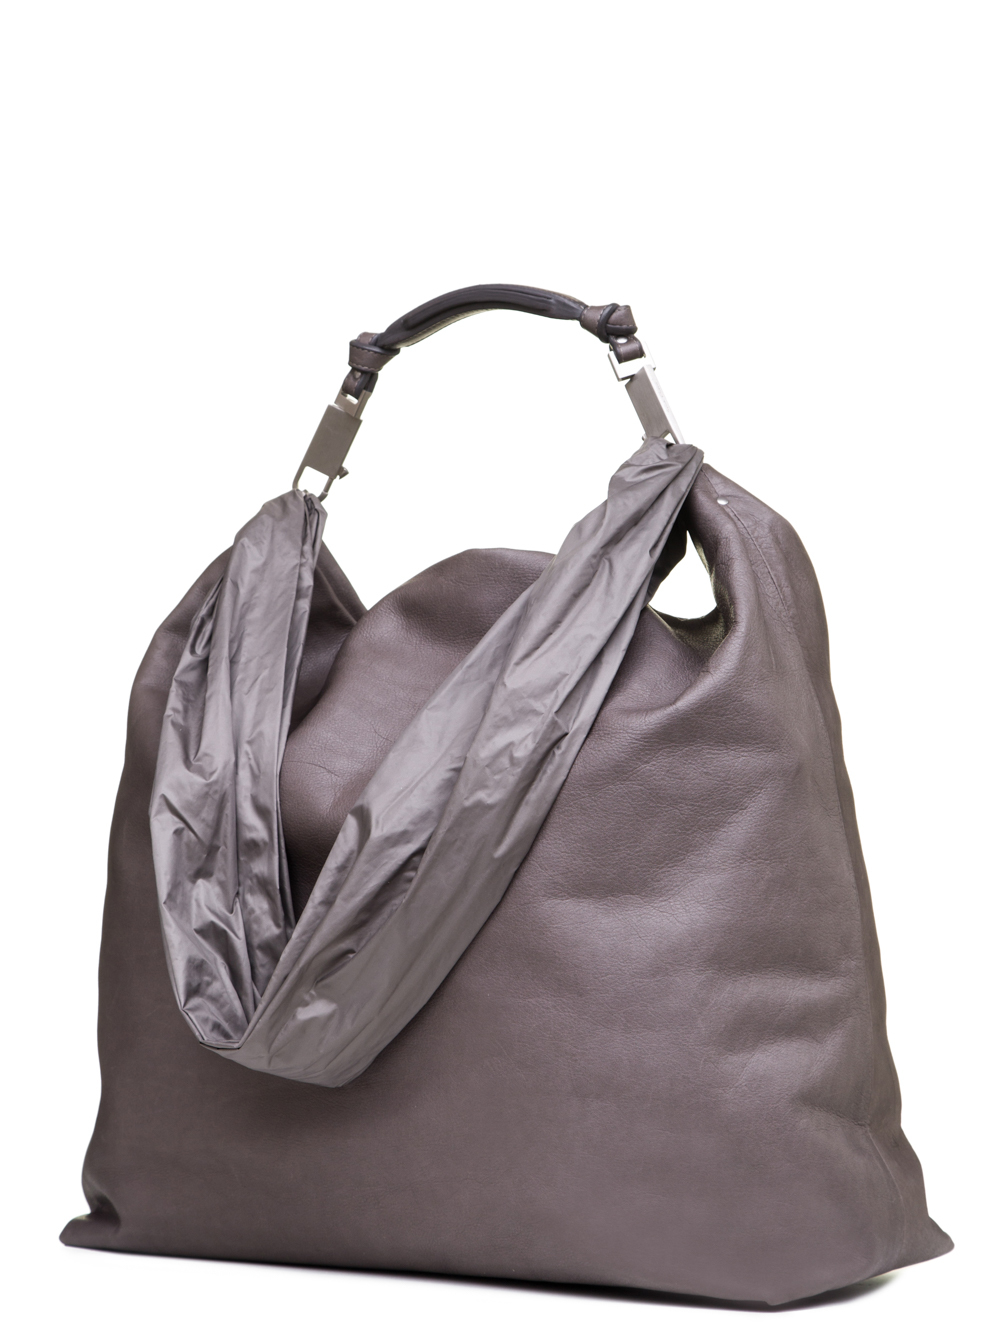 BAG IN DUST GREY CALF LEATHER